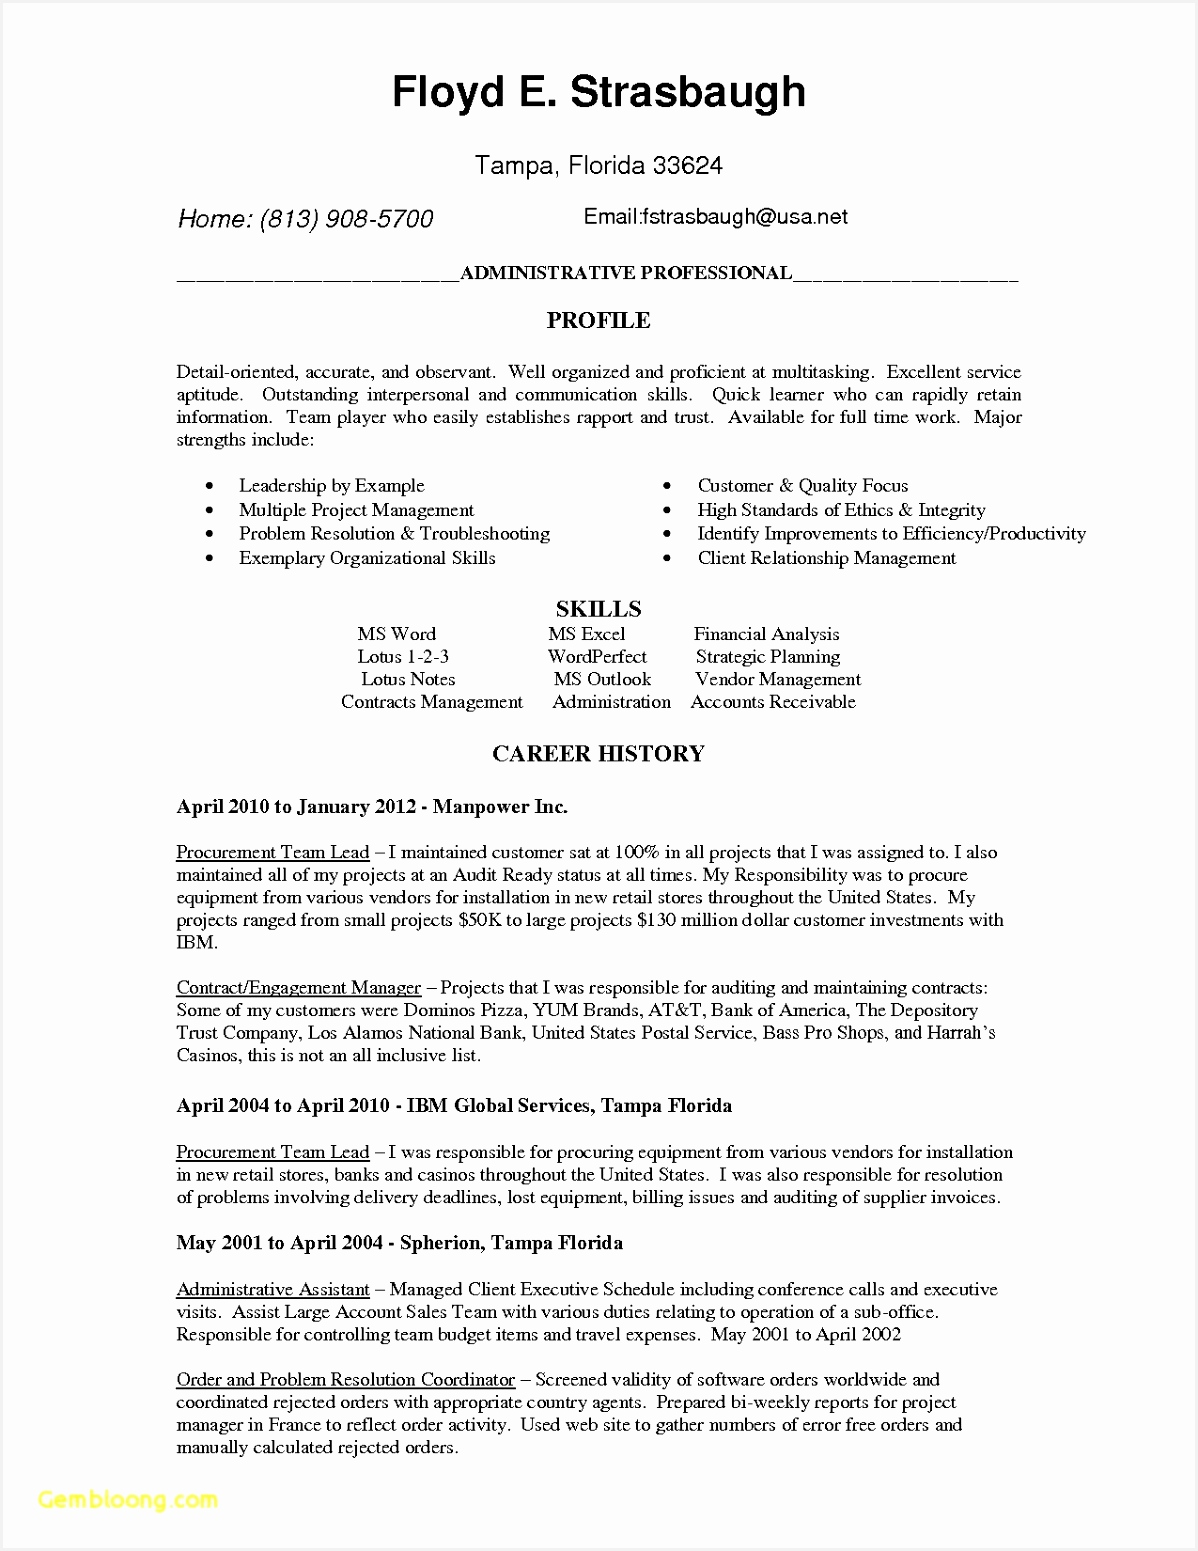 Resume Outline Free Faige Awesome Resume Samples Download In Word Valid Fice assistant Skills Resume Of 4 Resume Outline Free